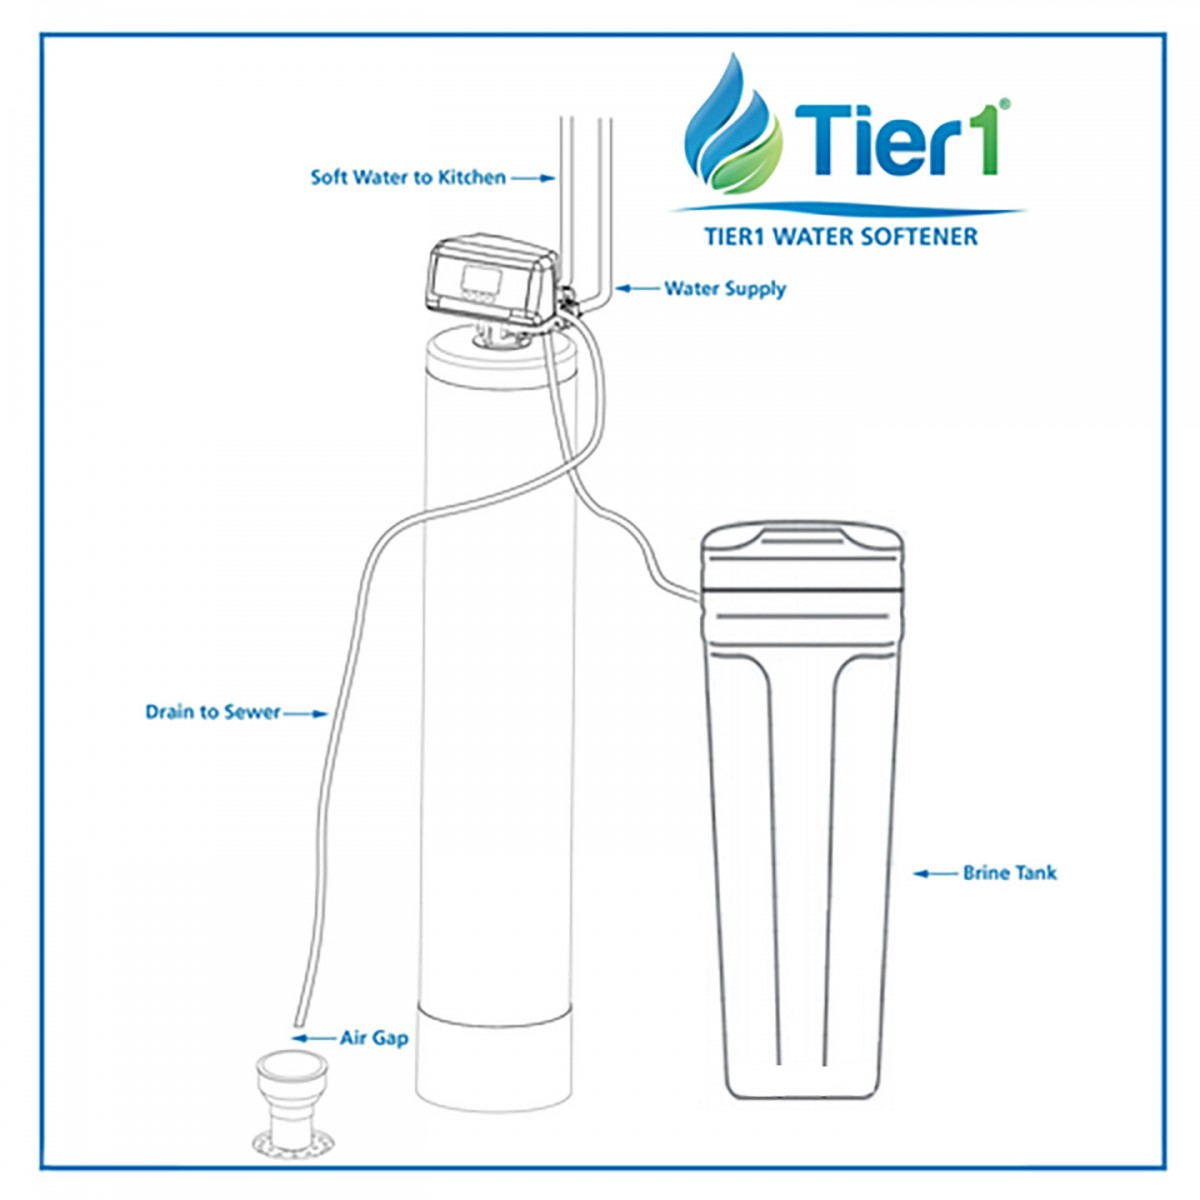 hight resolution of tier1 48 000 grain capacity water softener 4 stage ultra filtration hollow fiber drinking